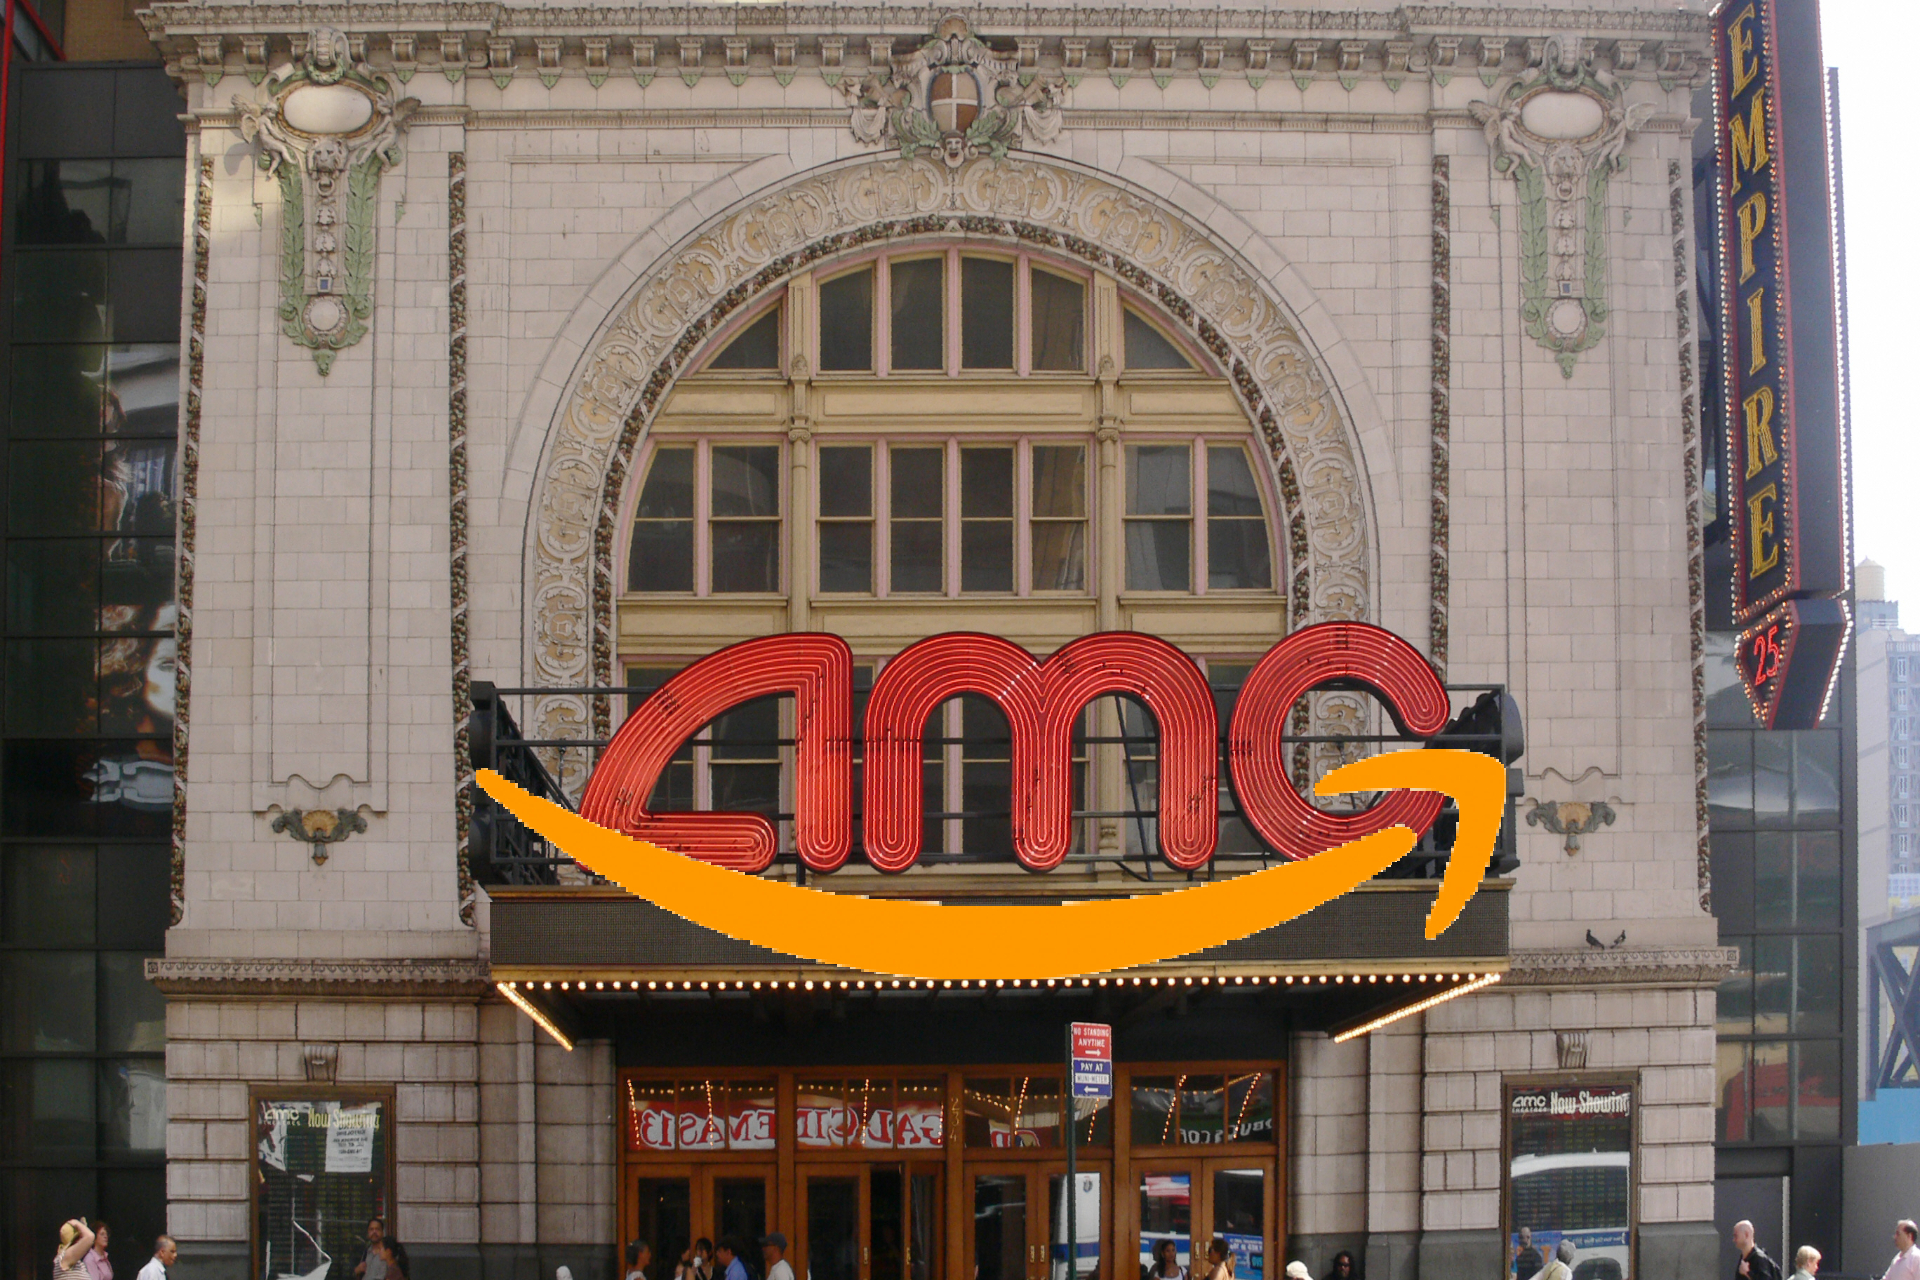 AMC Empire Theater NYC with Amazon smile logo superimposed